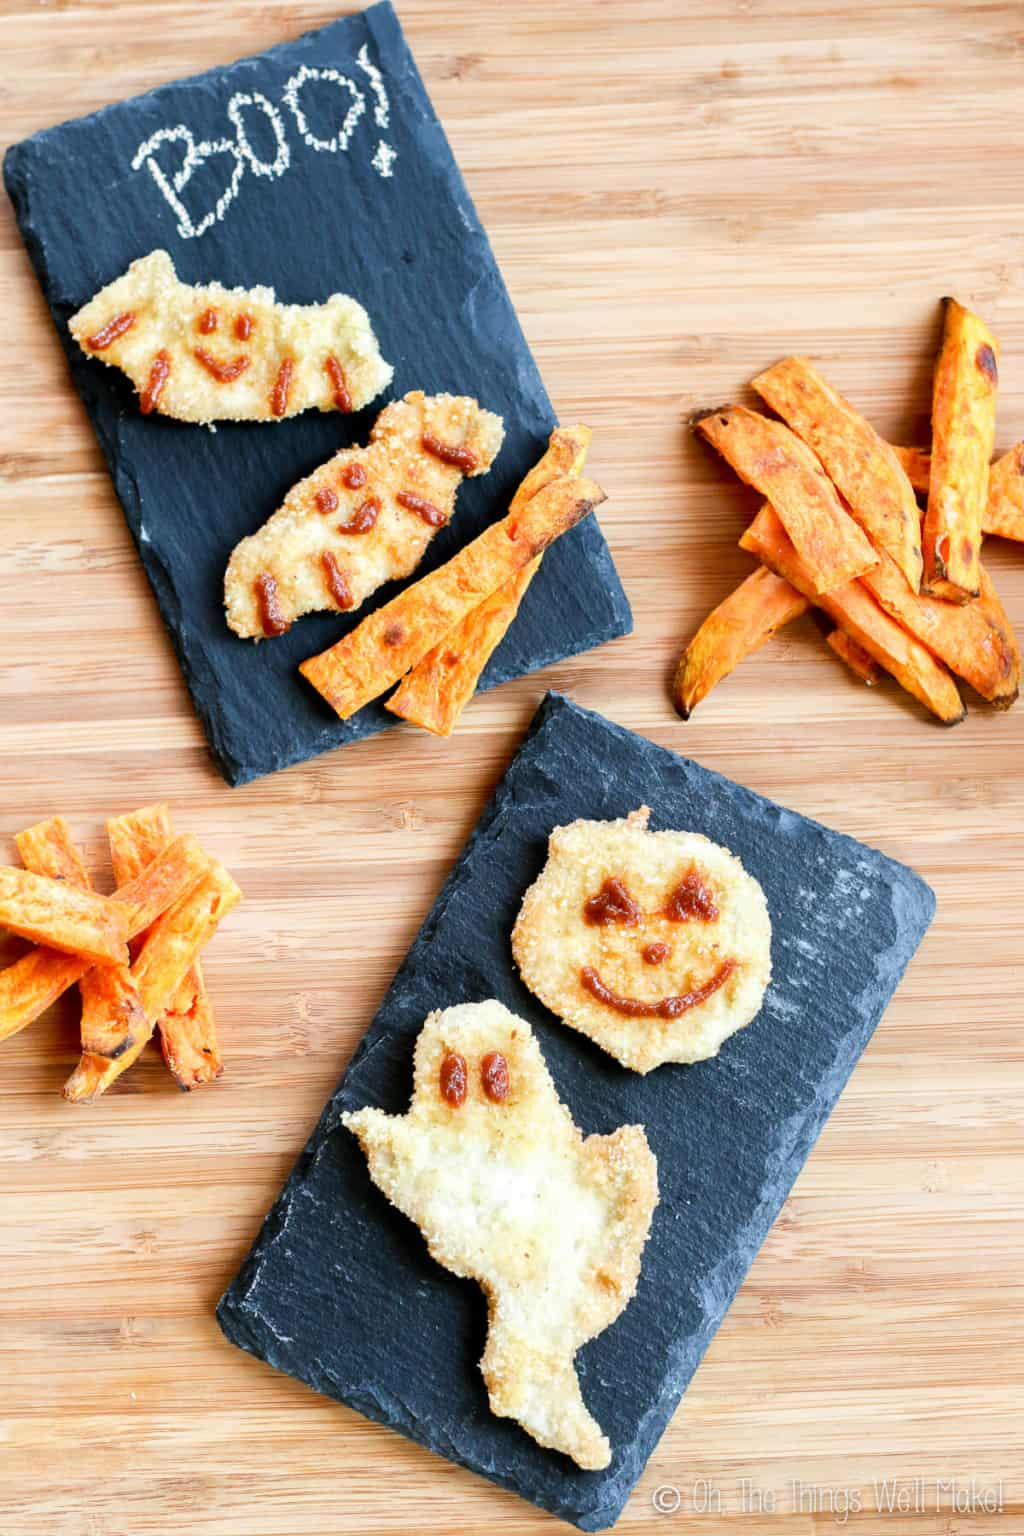 Halloween chicken nuggets placed on black rectangular plates, shaped like ghosts, pumpkins, and bats, and decorated with BBQ sauce. There are several pieces of sweet potato fries around the plates.